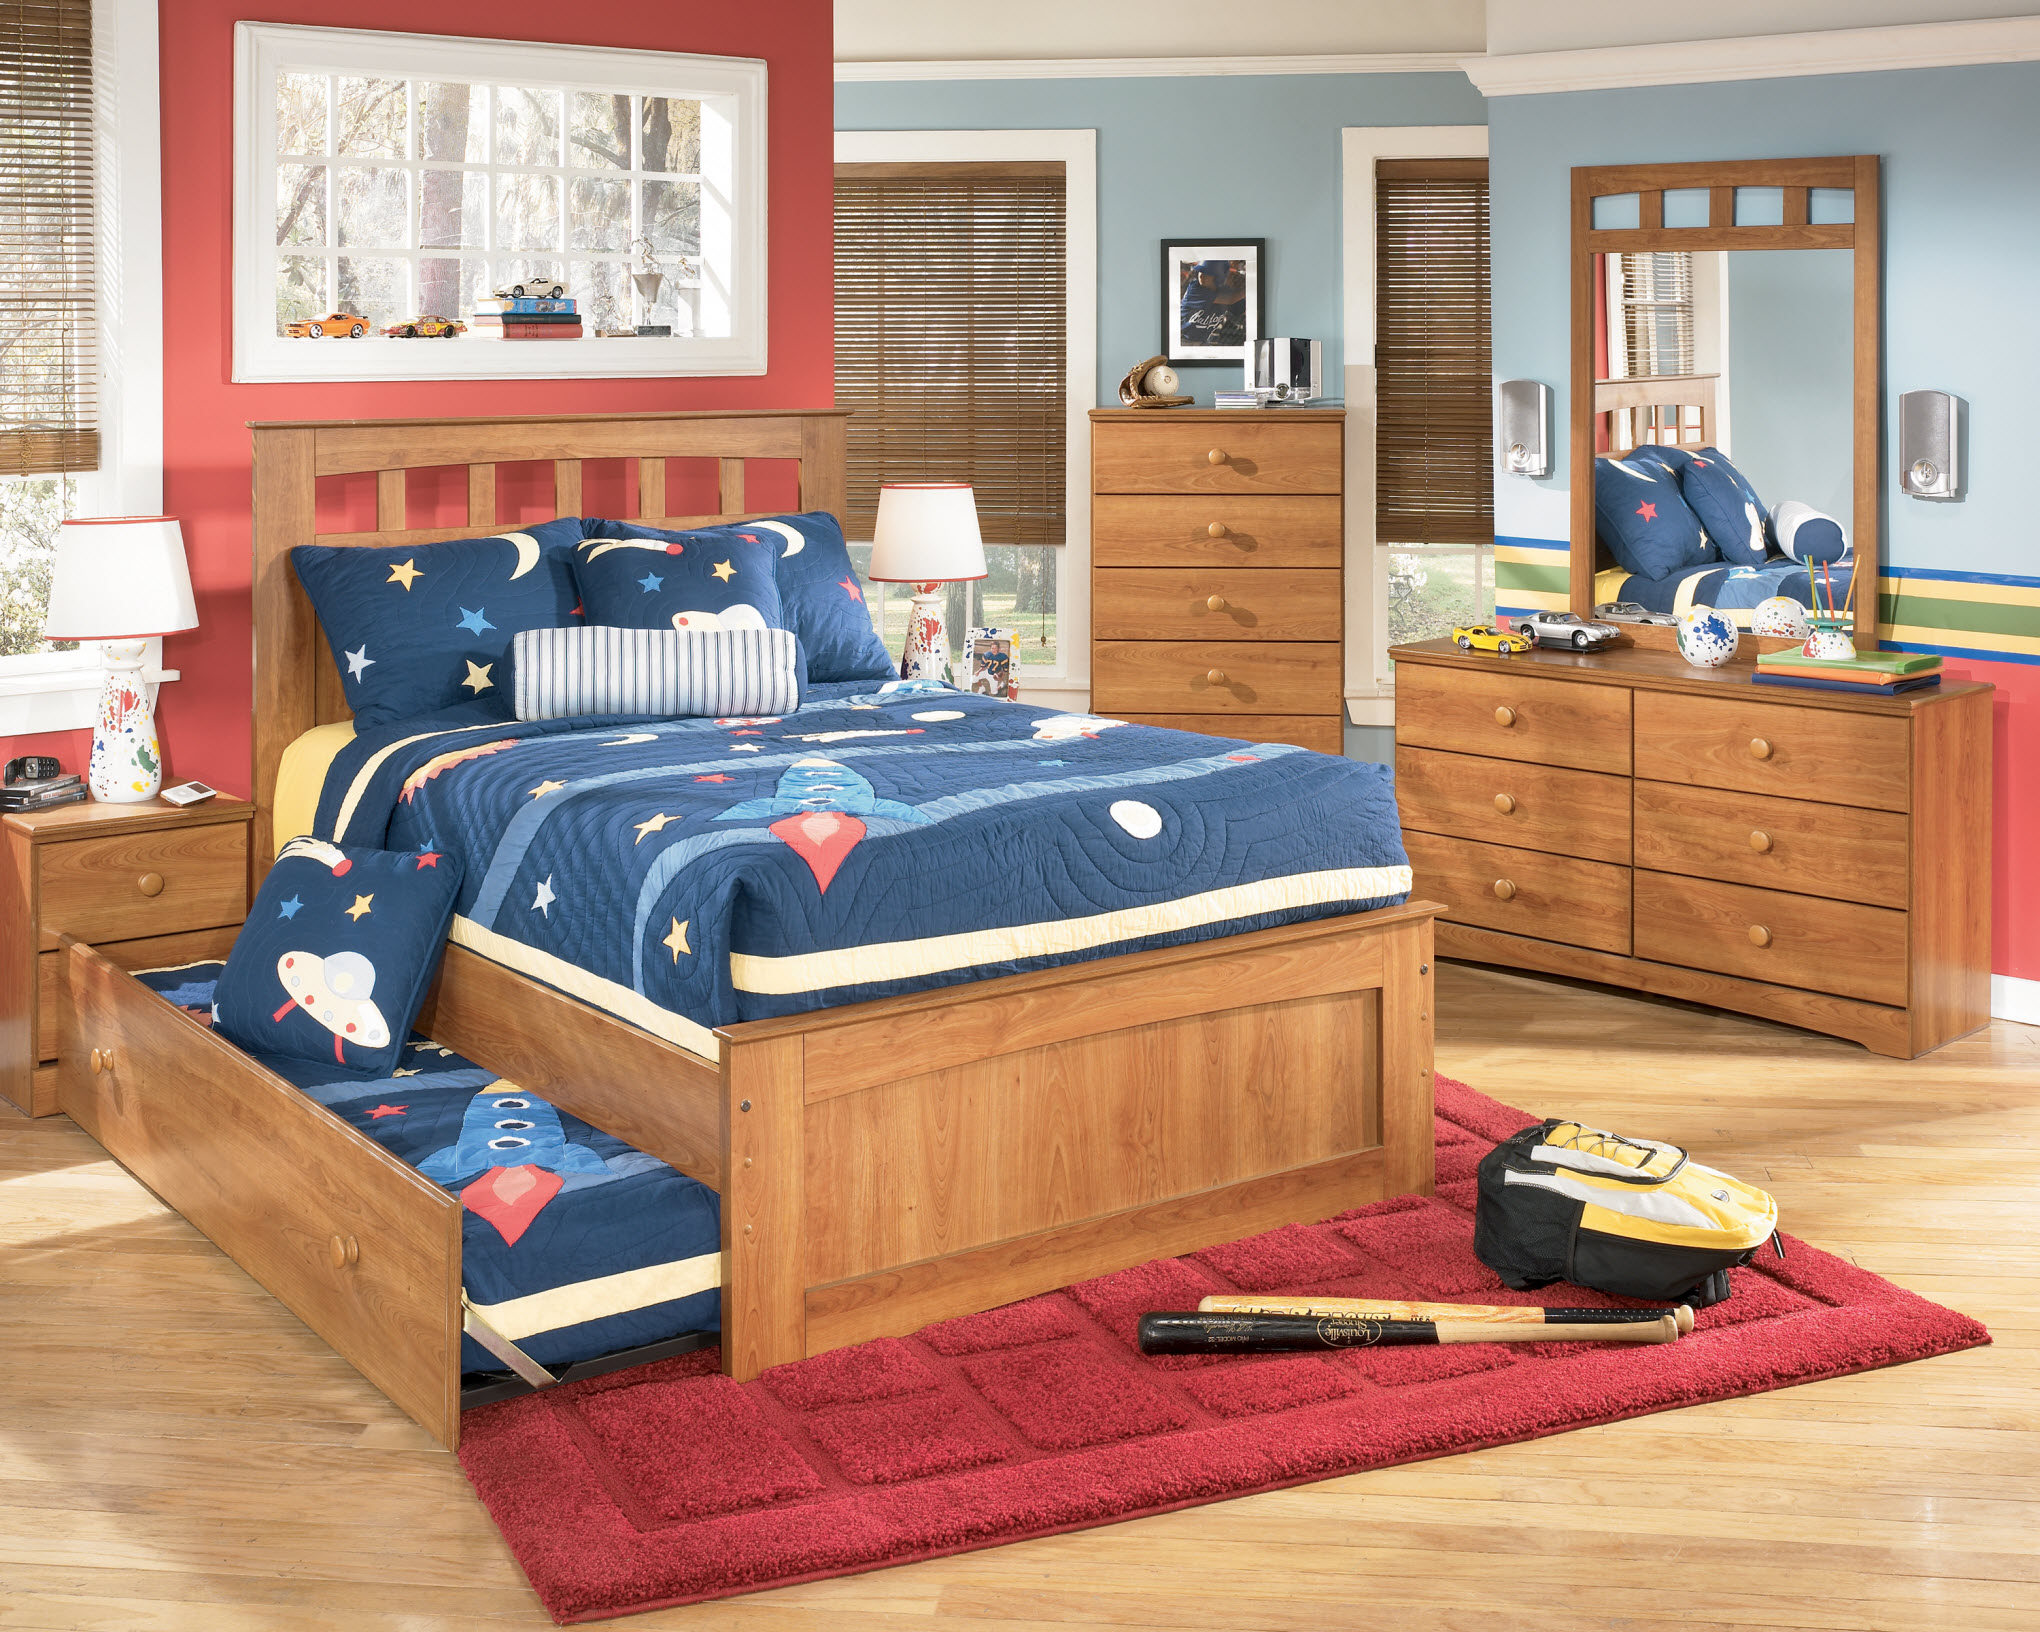 Childrens Bed With Drawers Underneath Kids Single Bed Frame Little Girl Bedroom  Furniture Sets Youth Bedroom Furniture Sets